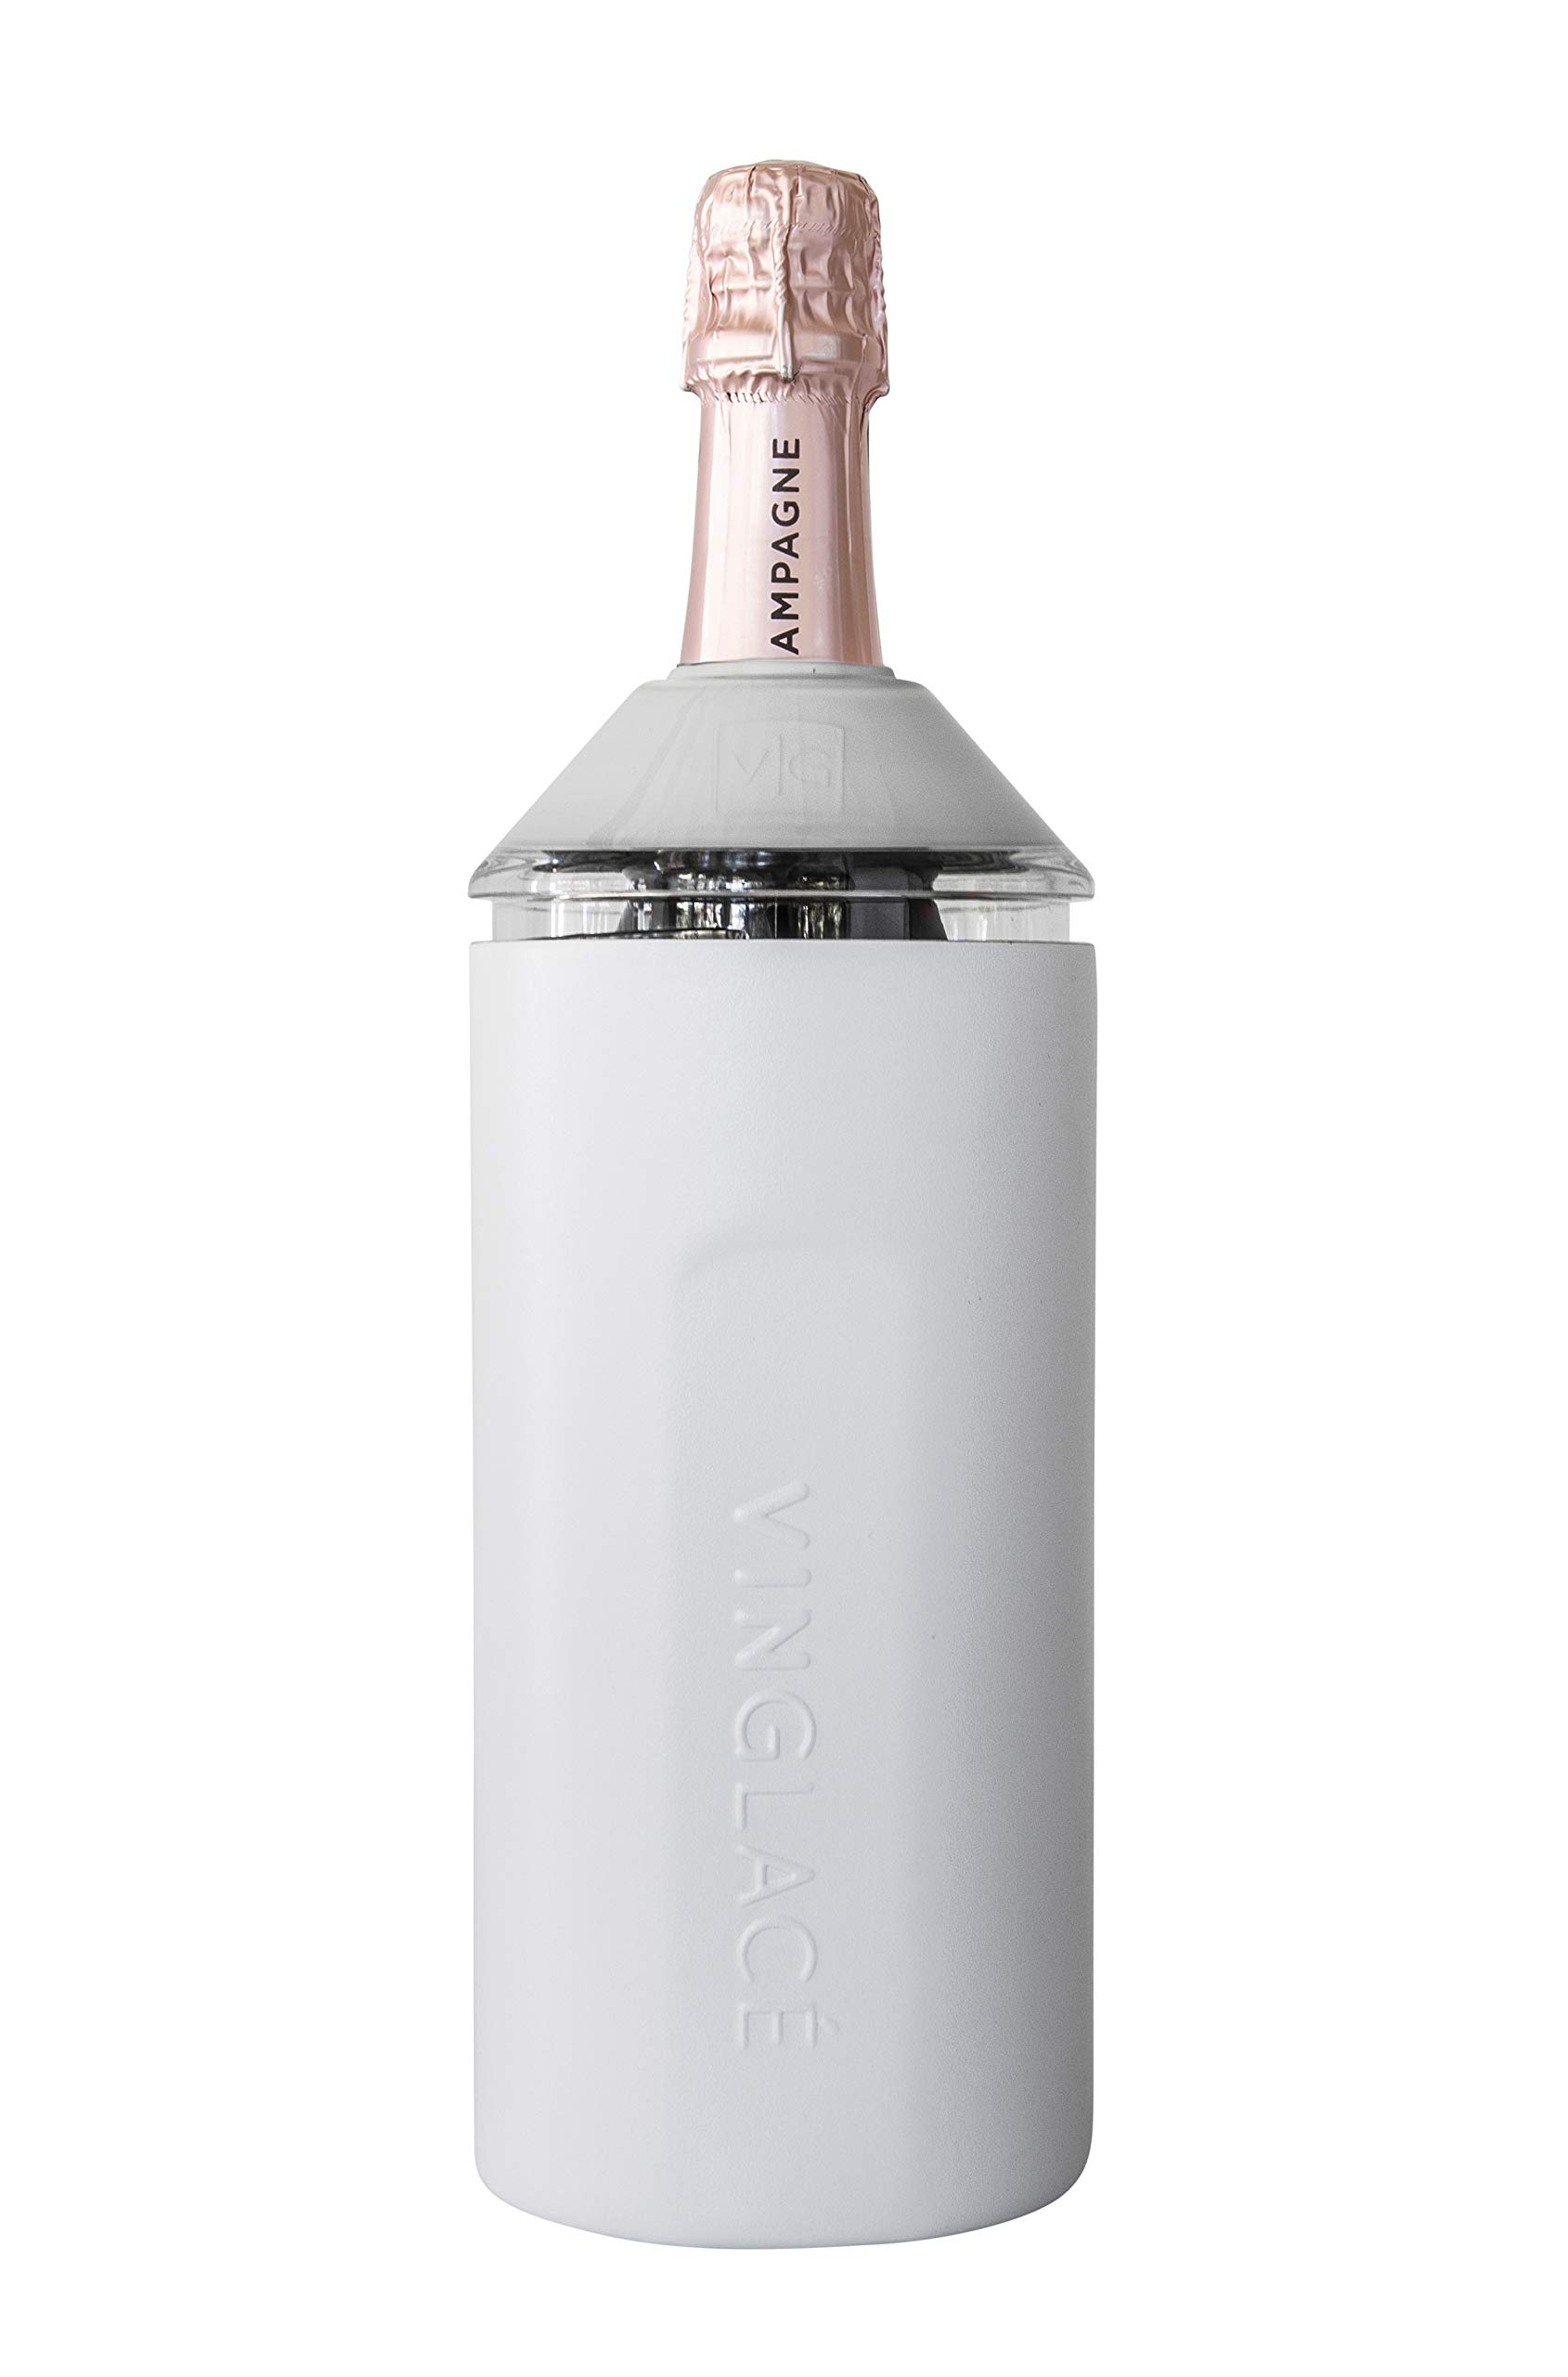 Stainless Steel Tritan Plastic Adjustable Top Vacuum Insulated White Double Walled Vinglac/é Wine Bottle Insulator Keeps Wine /& Champagne Cold for Hours 10 x 11 x 12